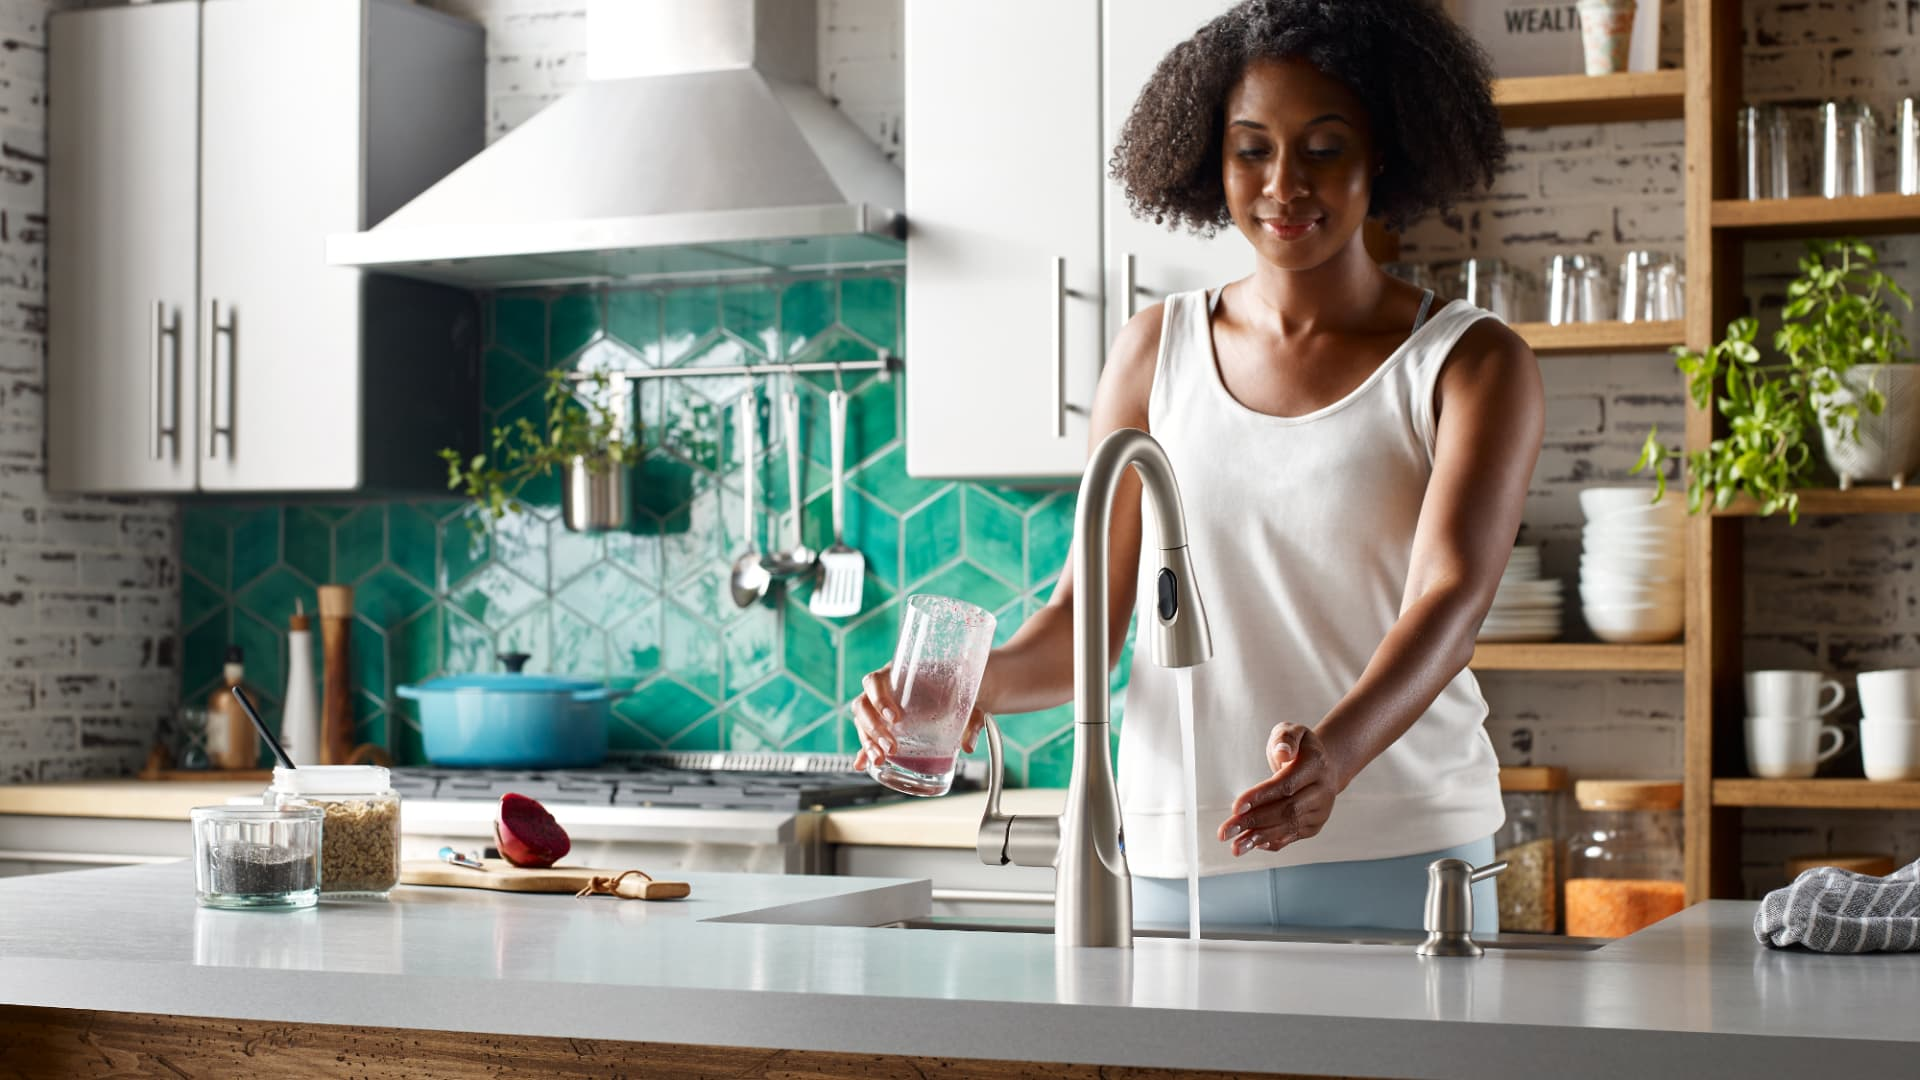 Moen touchless faucets are among the clean home tech innovations that while not specifically created for Covid-19, have added appeal now.